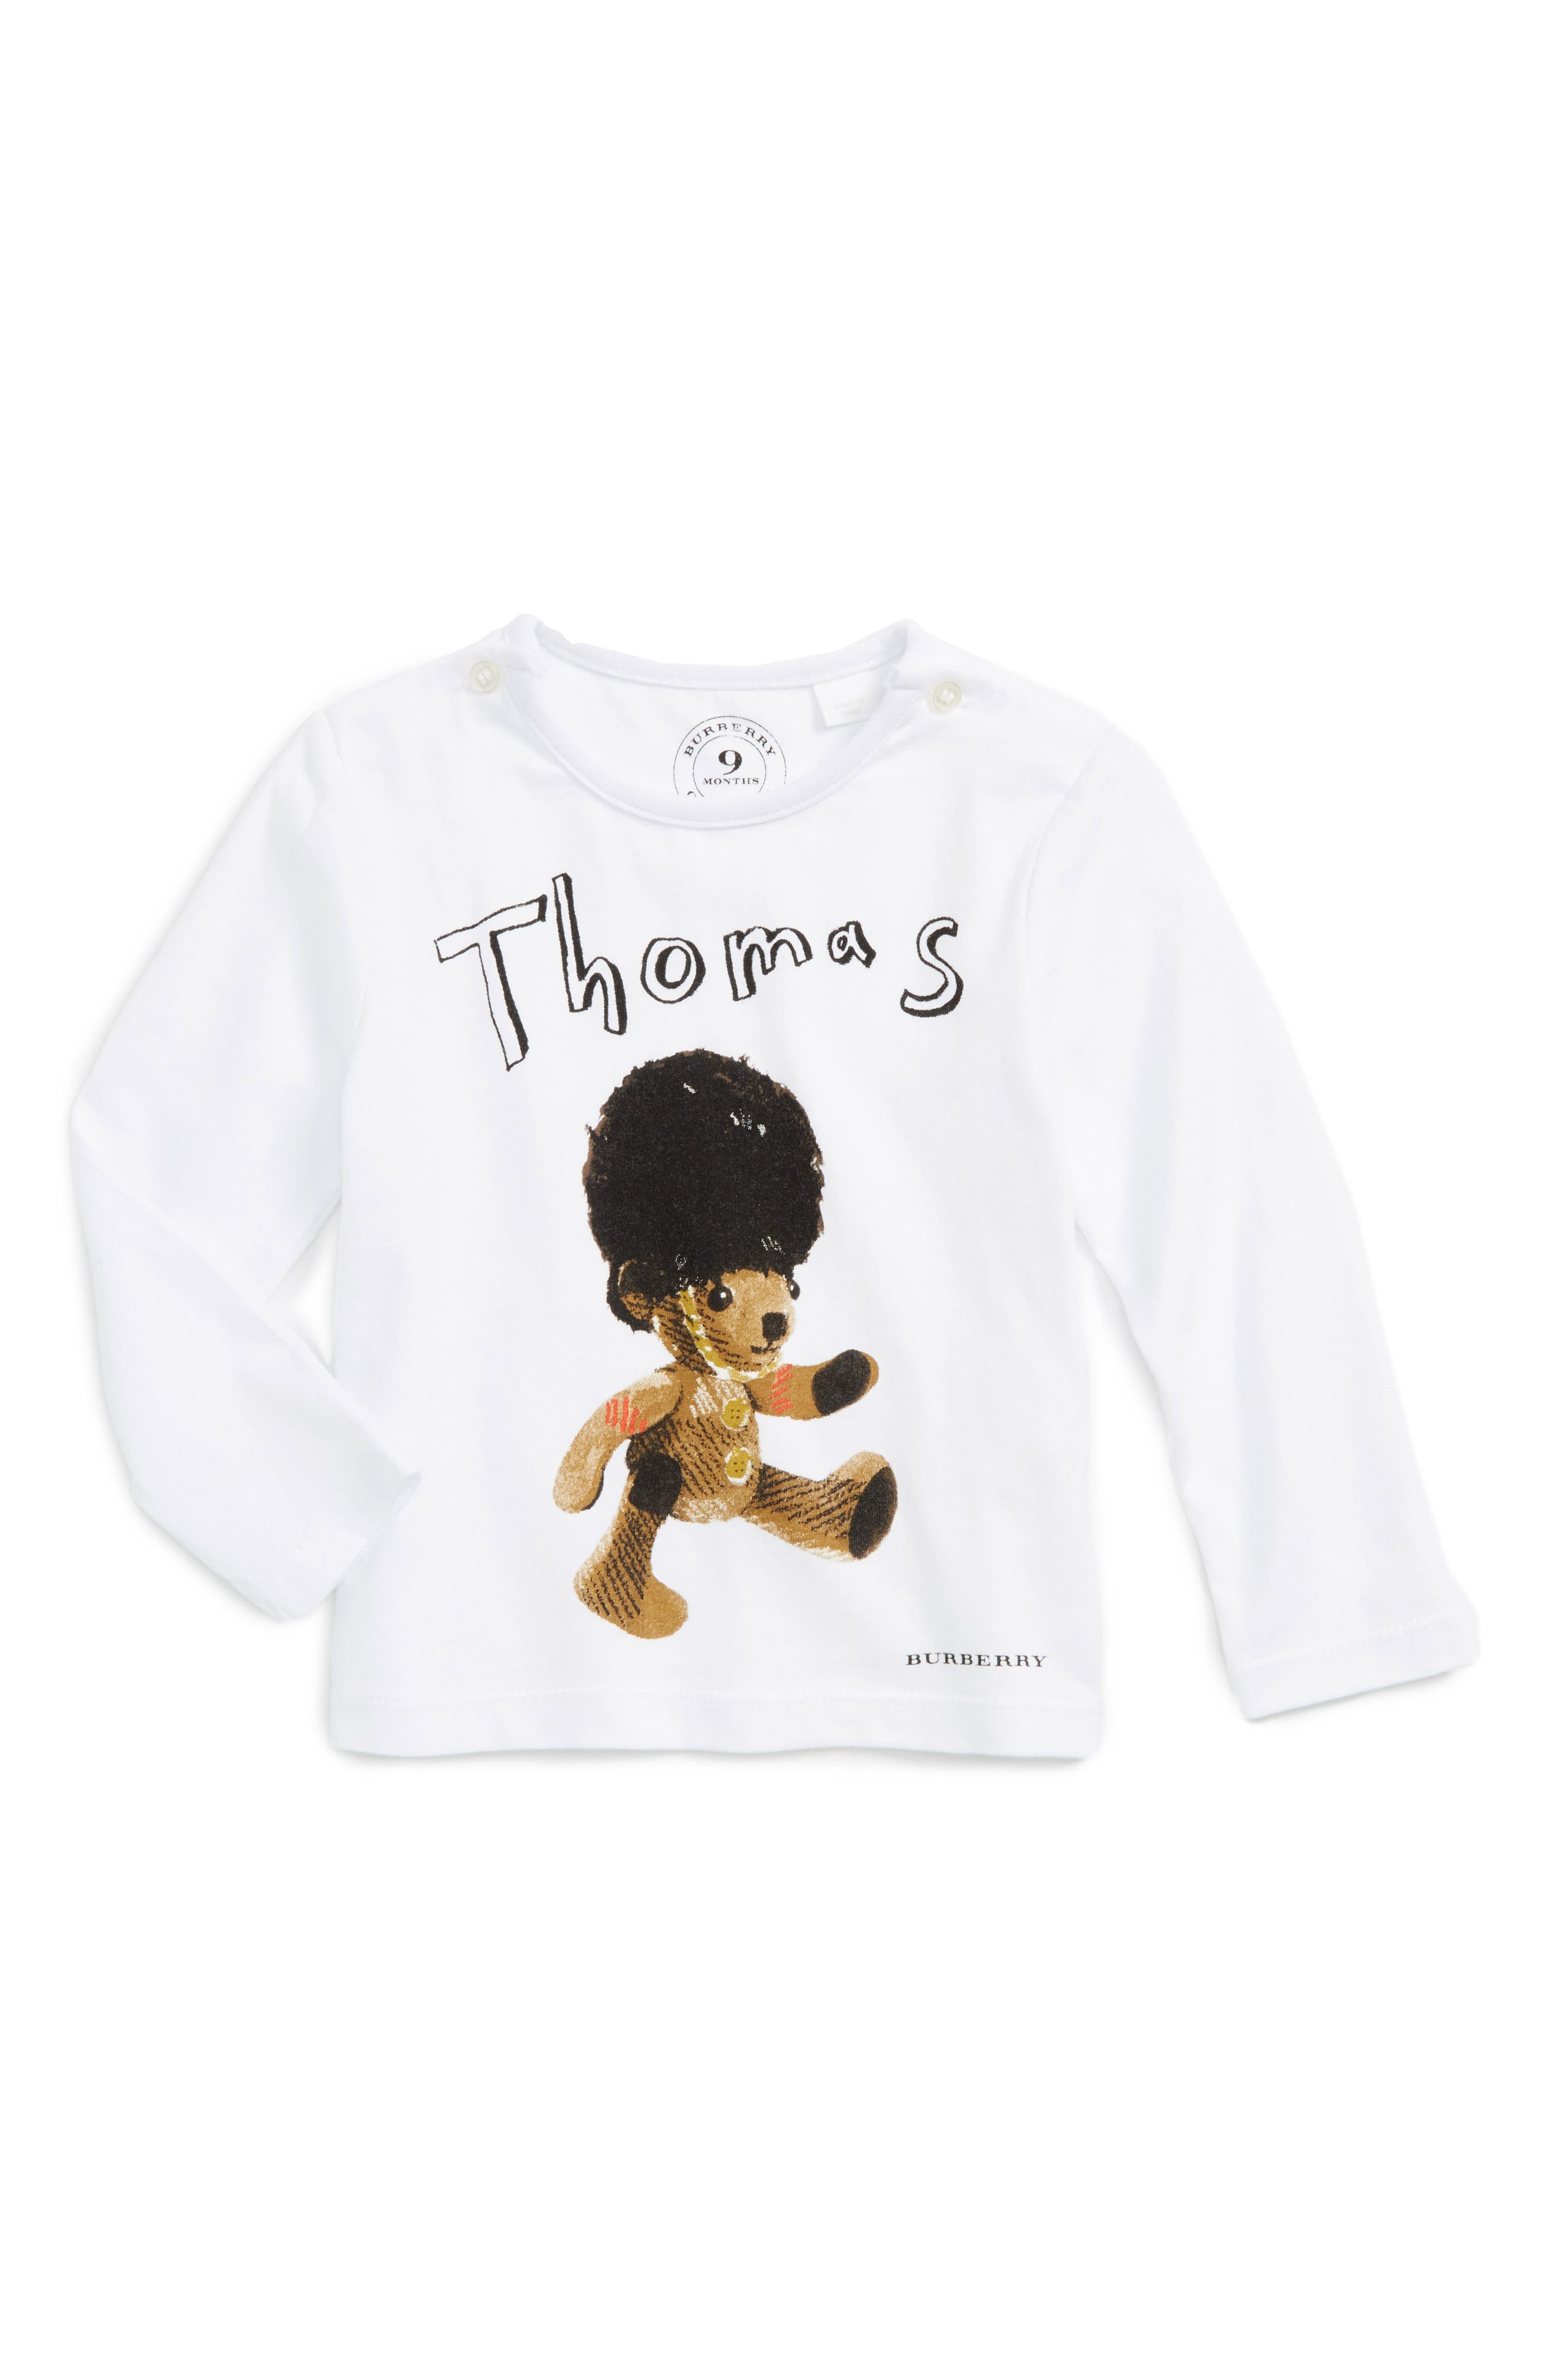 Thomas Bear Graphic T-Shirt,                             Main thumbnail 1, color,                             White